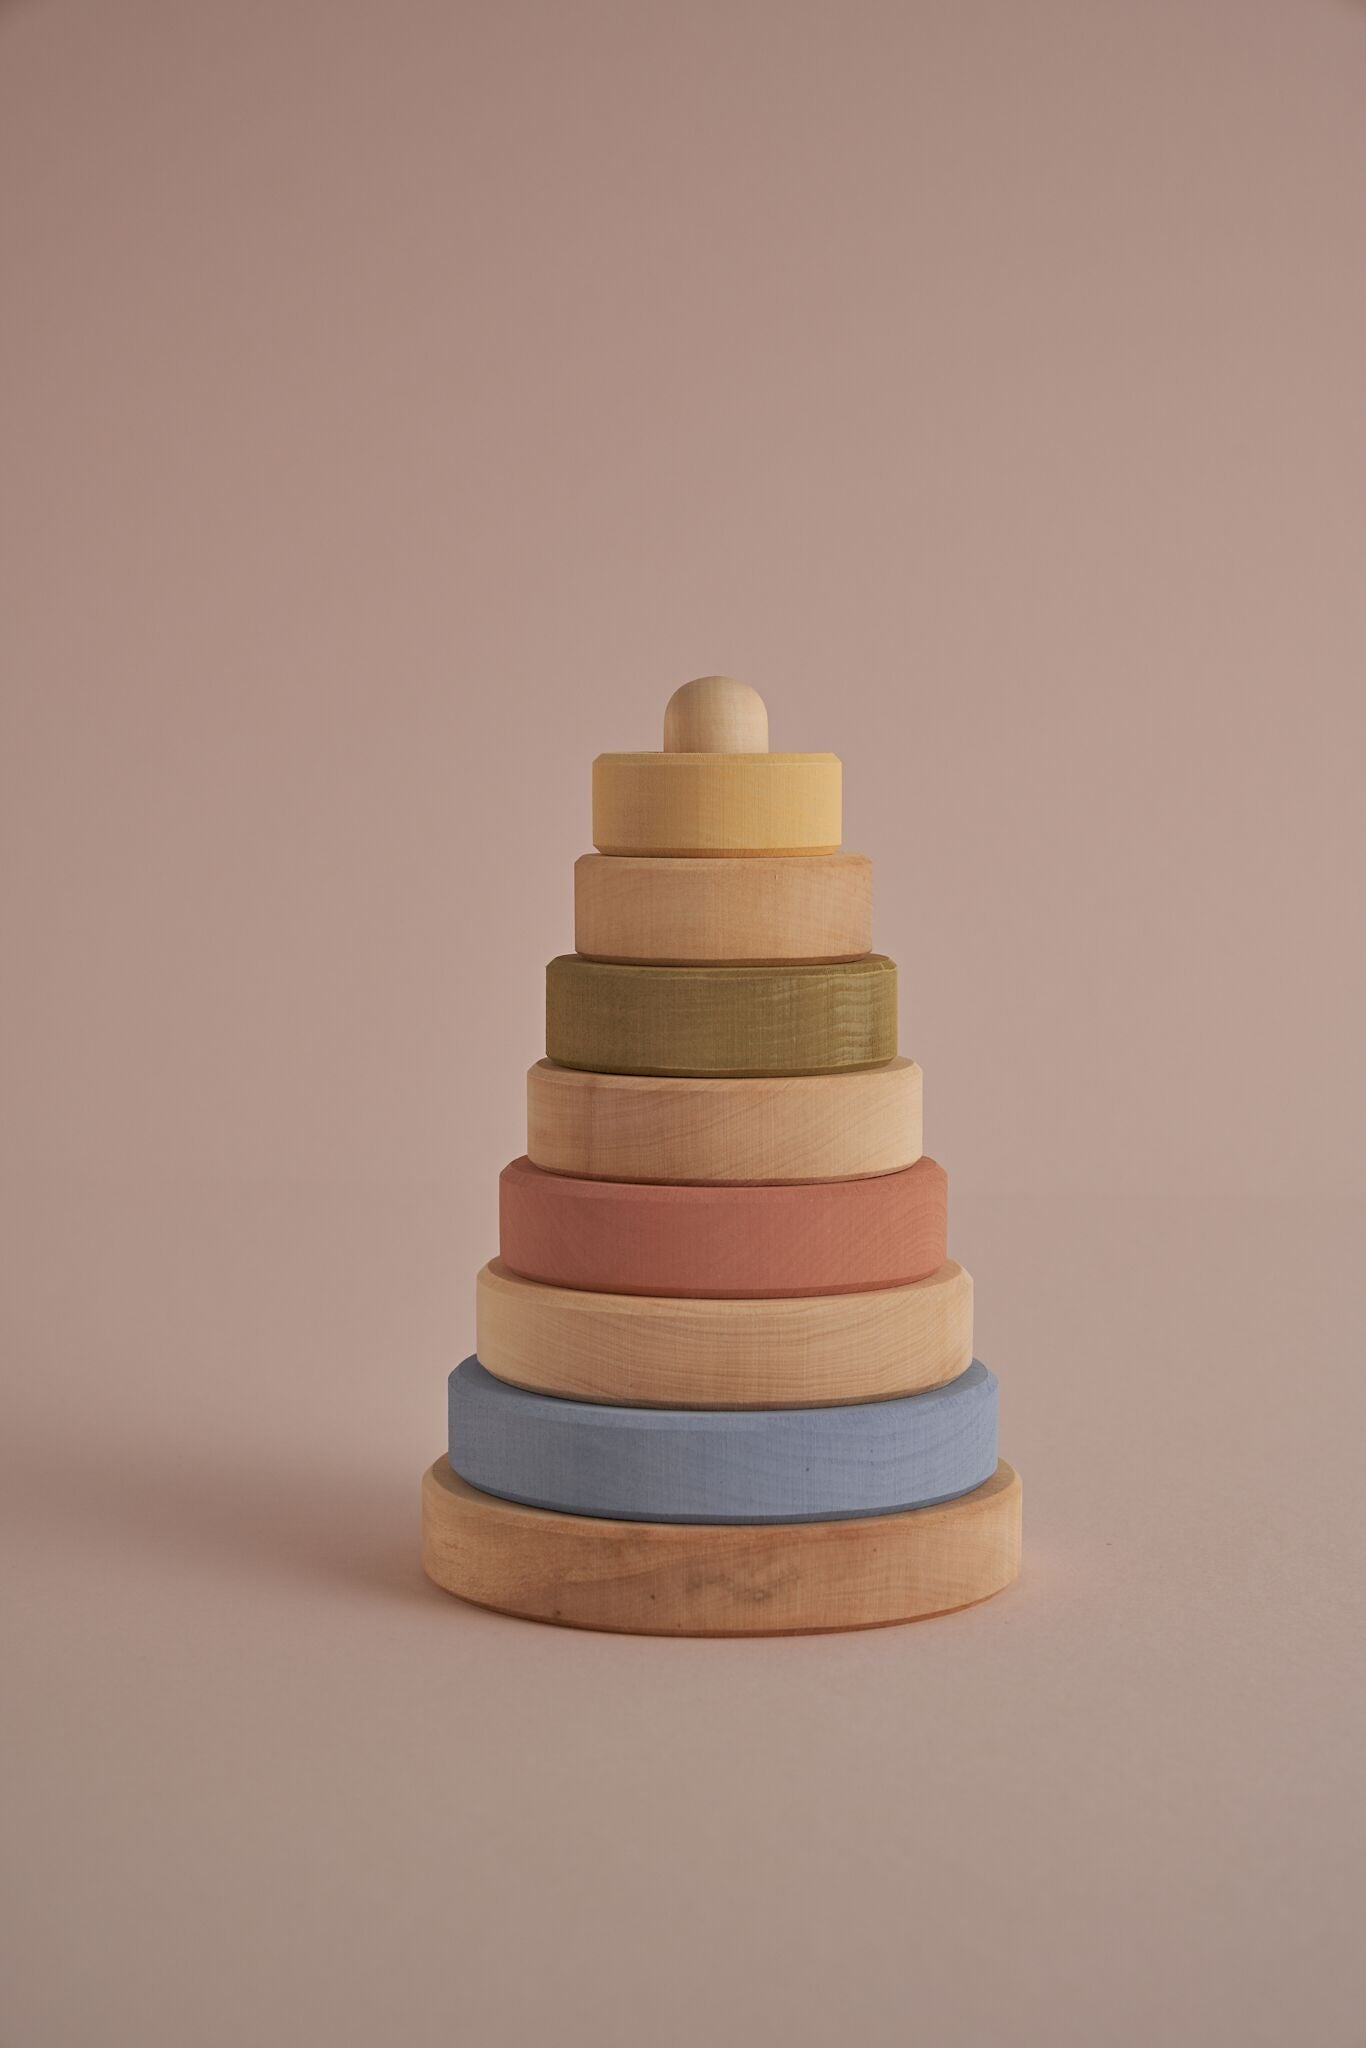 Raduga Grez Wooden Stacking Tower, Pastel + Natural